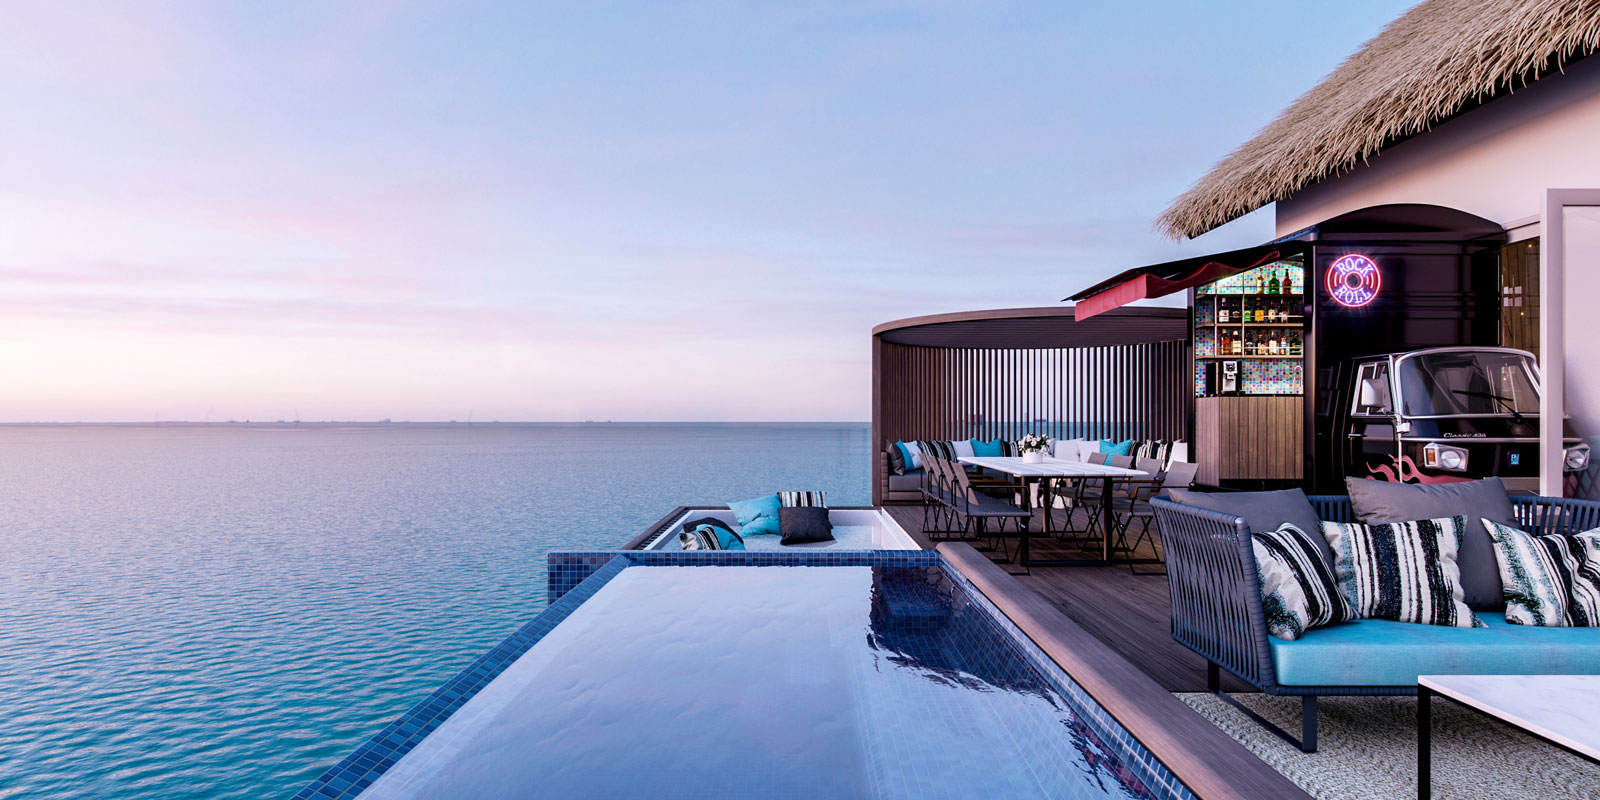 Hard-Rock-Hotel-Maldives_1600x800